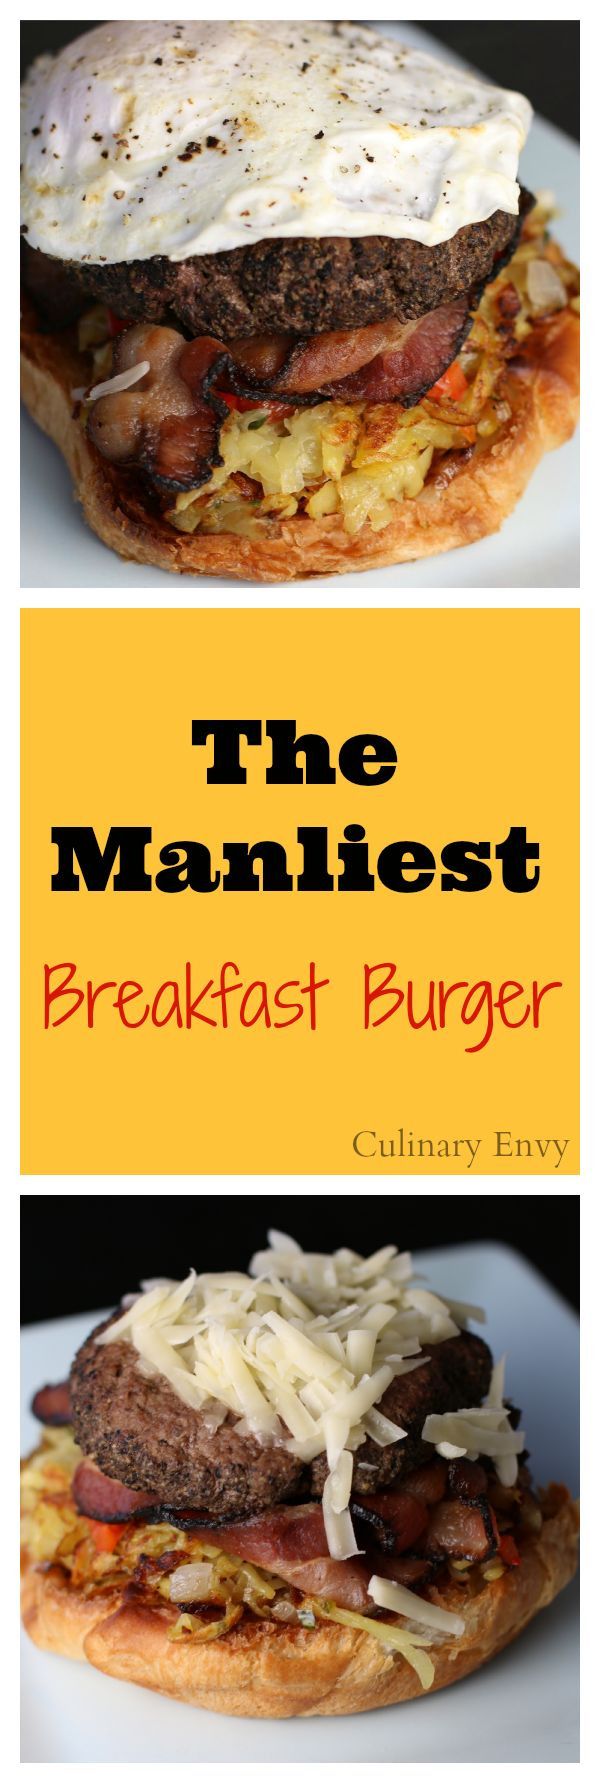 The Manliest Breakfast Burger will put a smile on his face. Layers of flavor make it a must for this weekend!